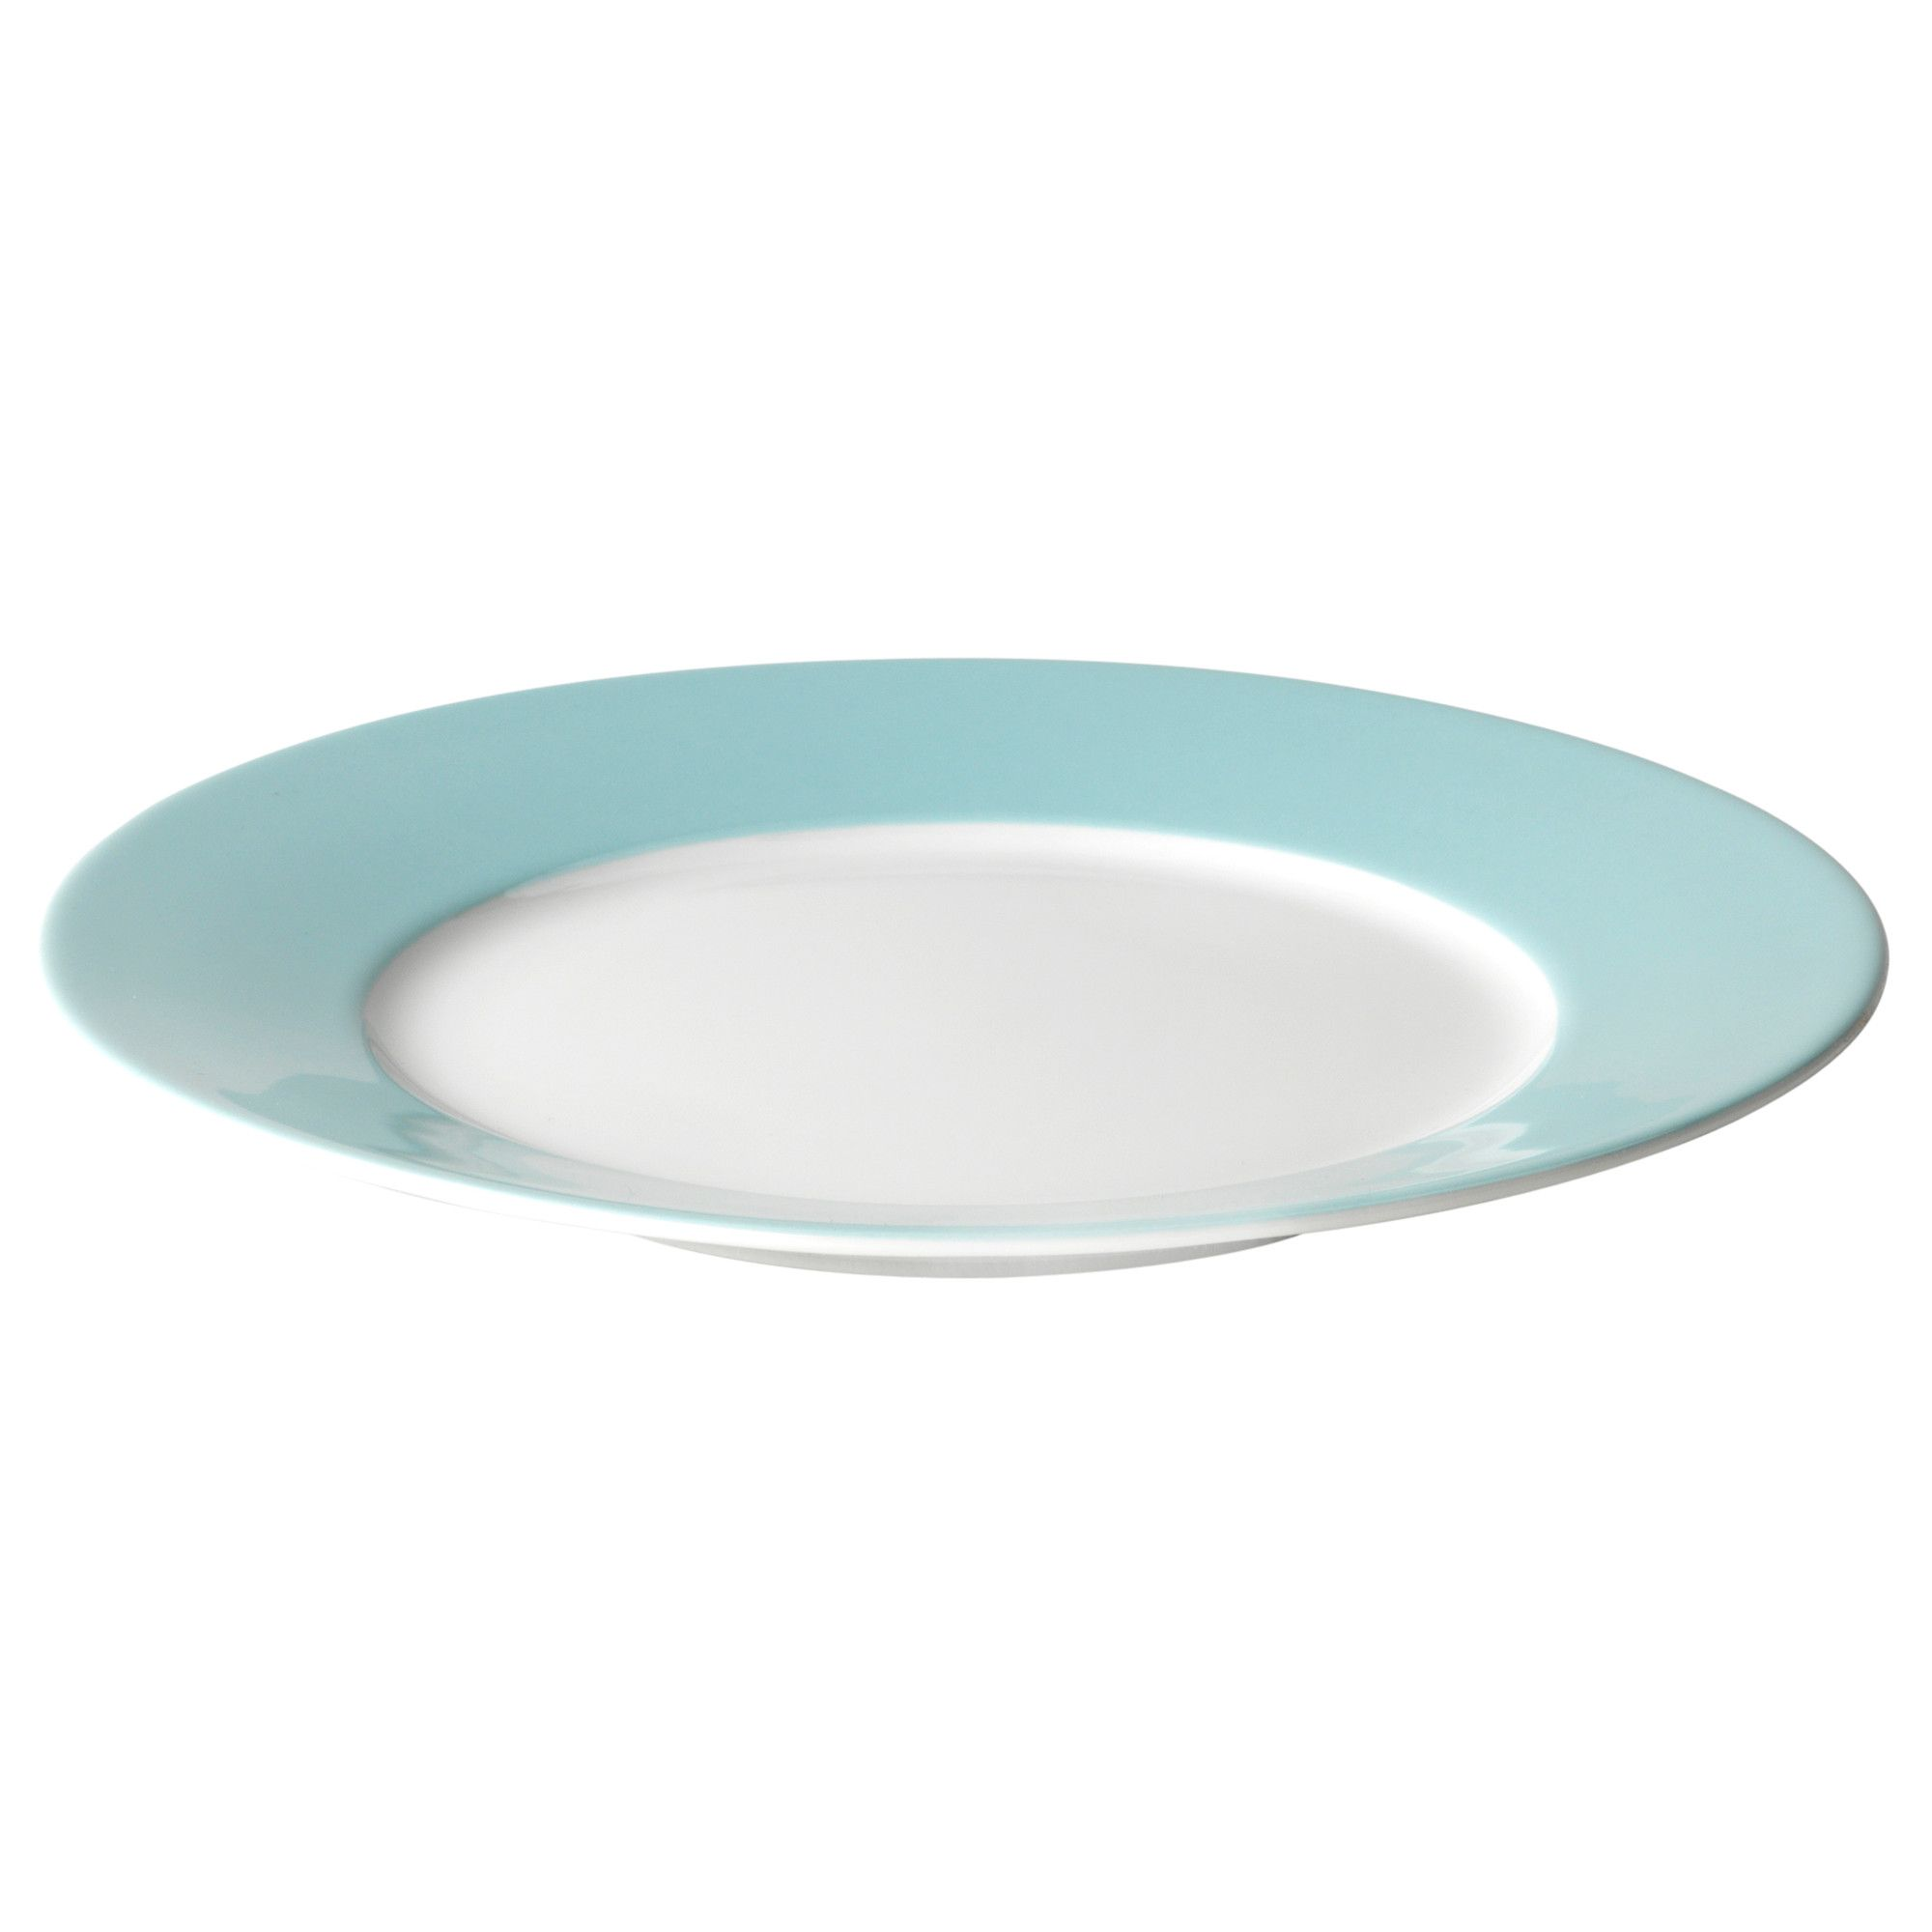 IKEA 365+ Side plate, white, light turquoise $2.99 - love this color ...